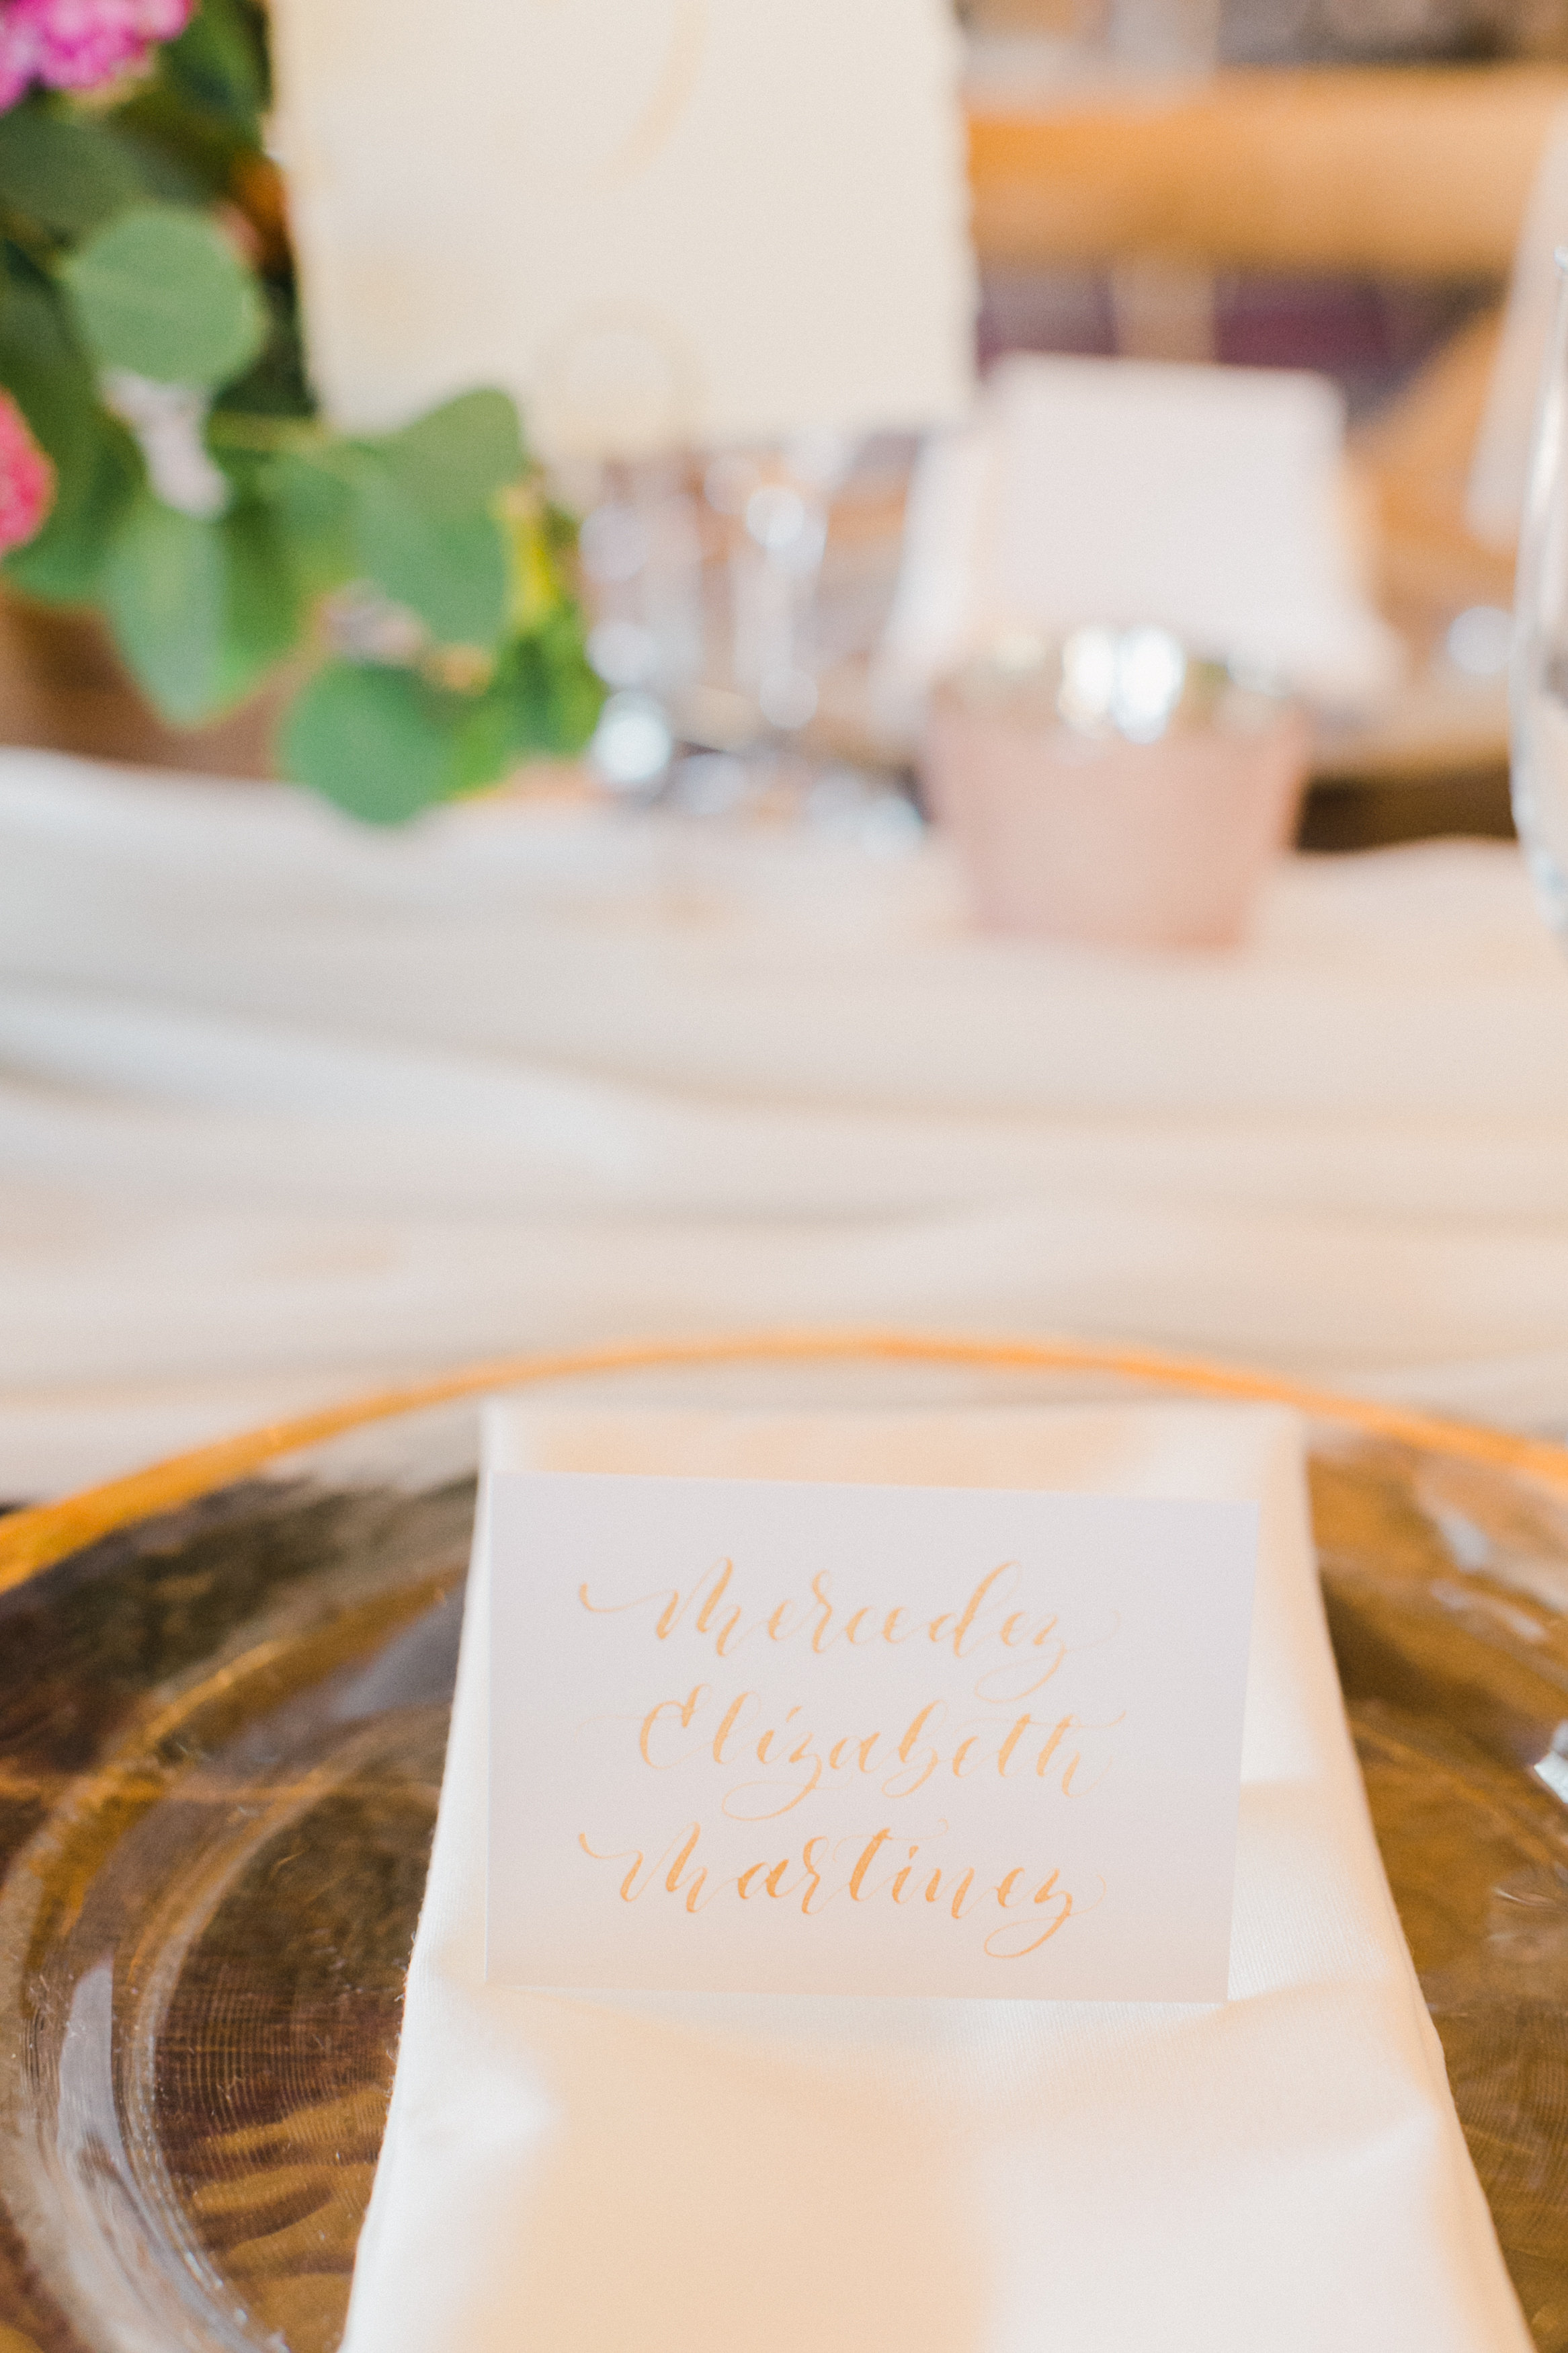 Yosemite wedding place cards calligraphy items by paperloveme5.jpg